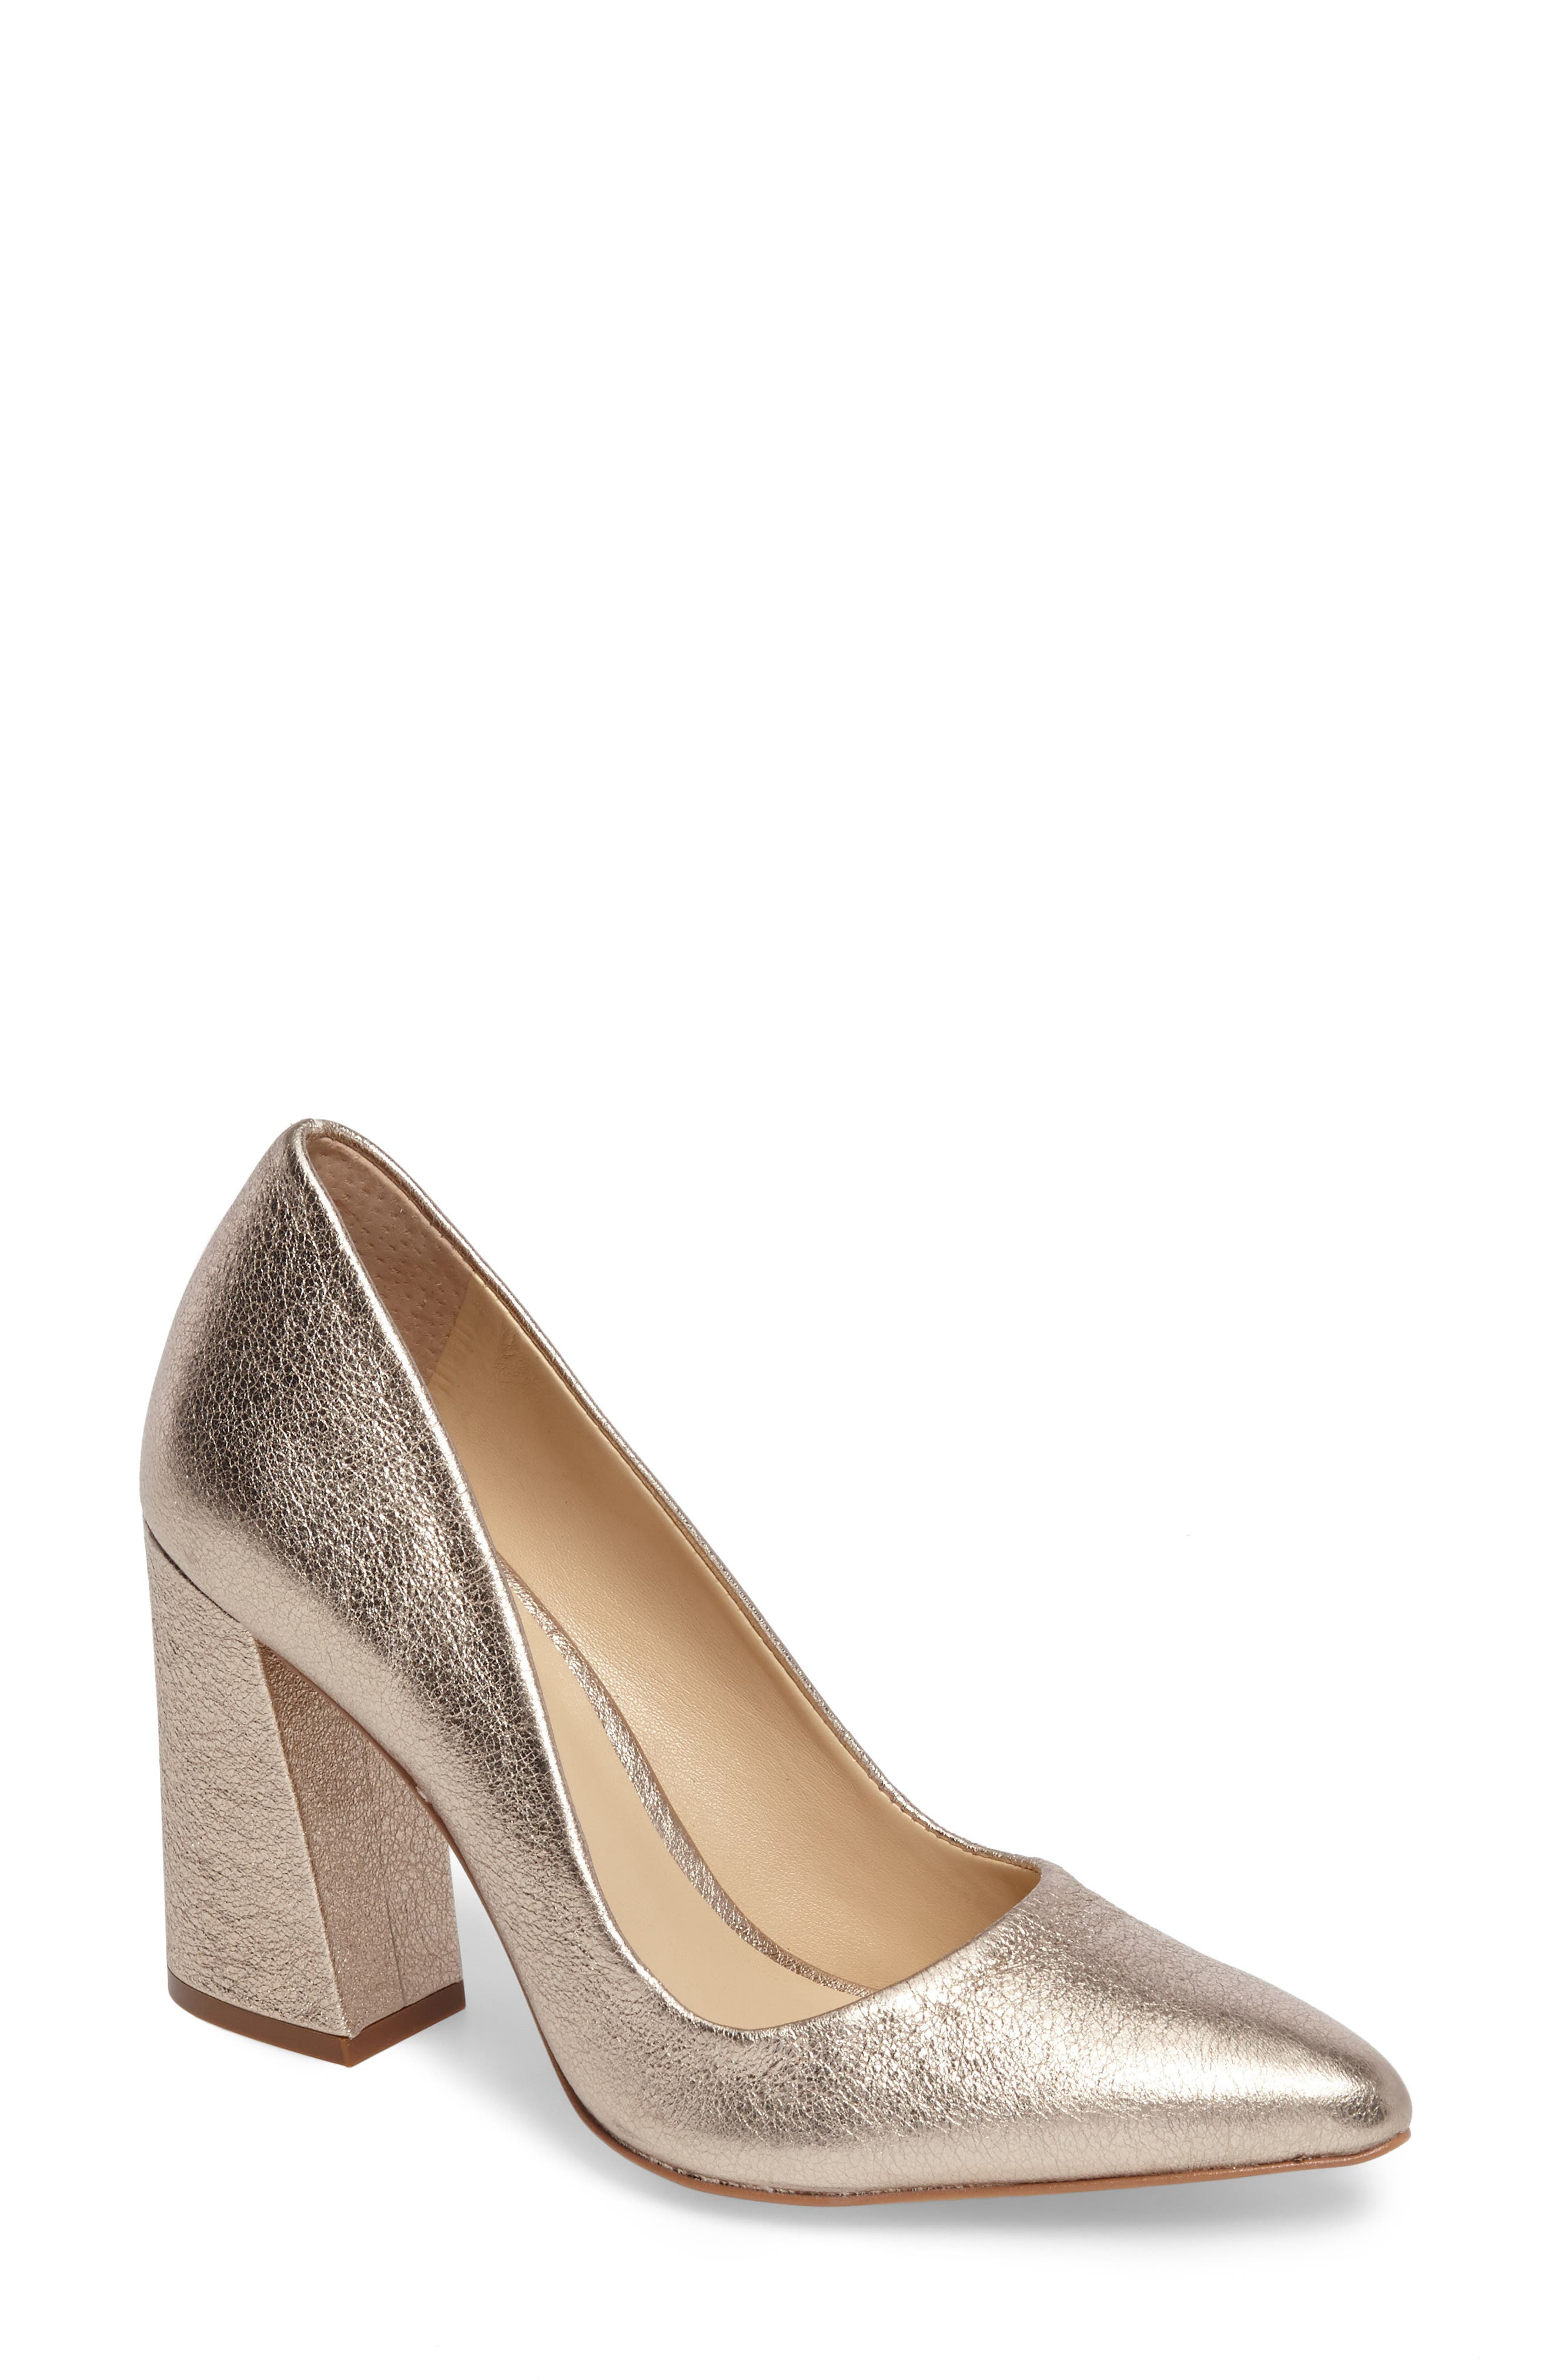 Vince Camuto Talise Pointy Toe Pump (Women)